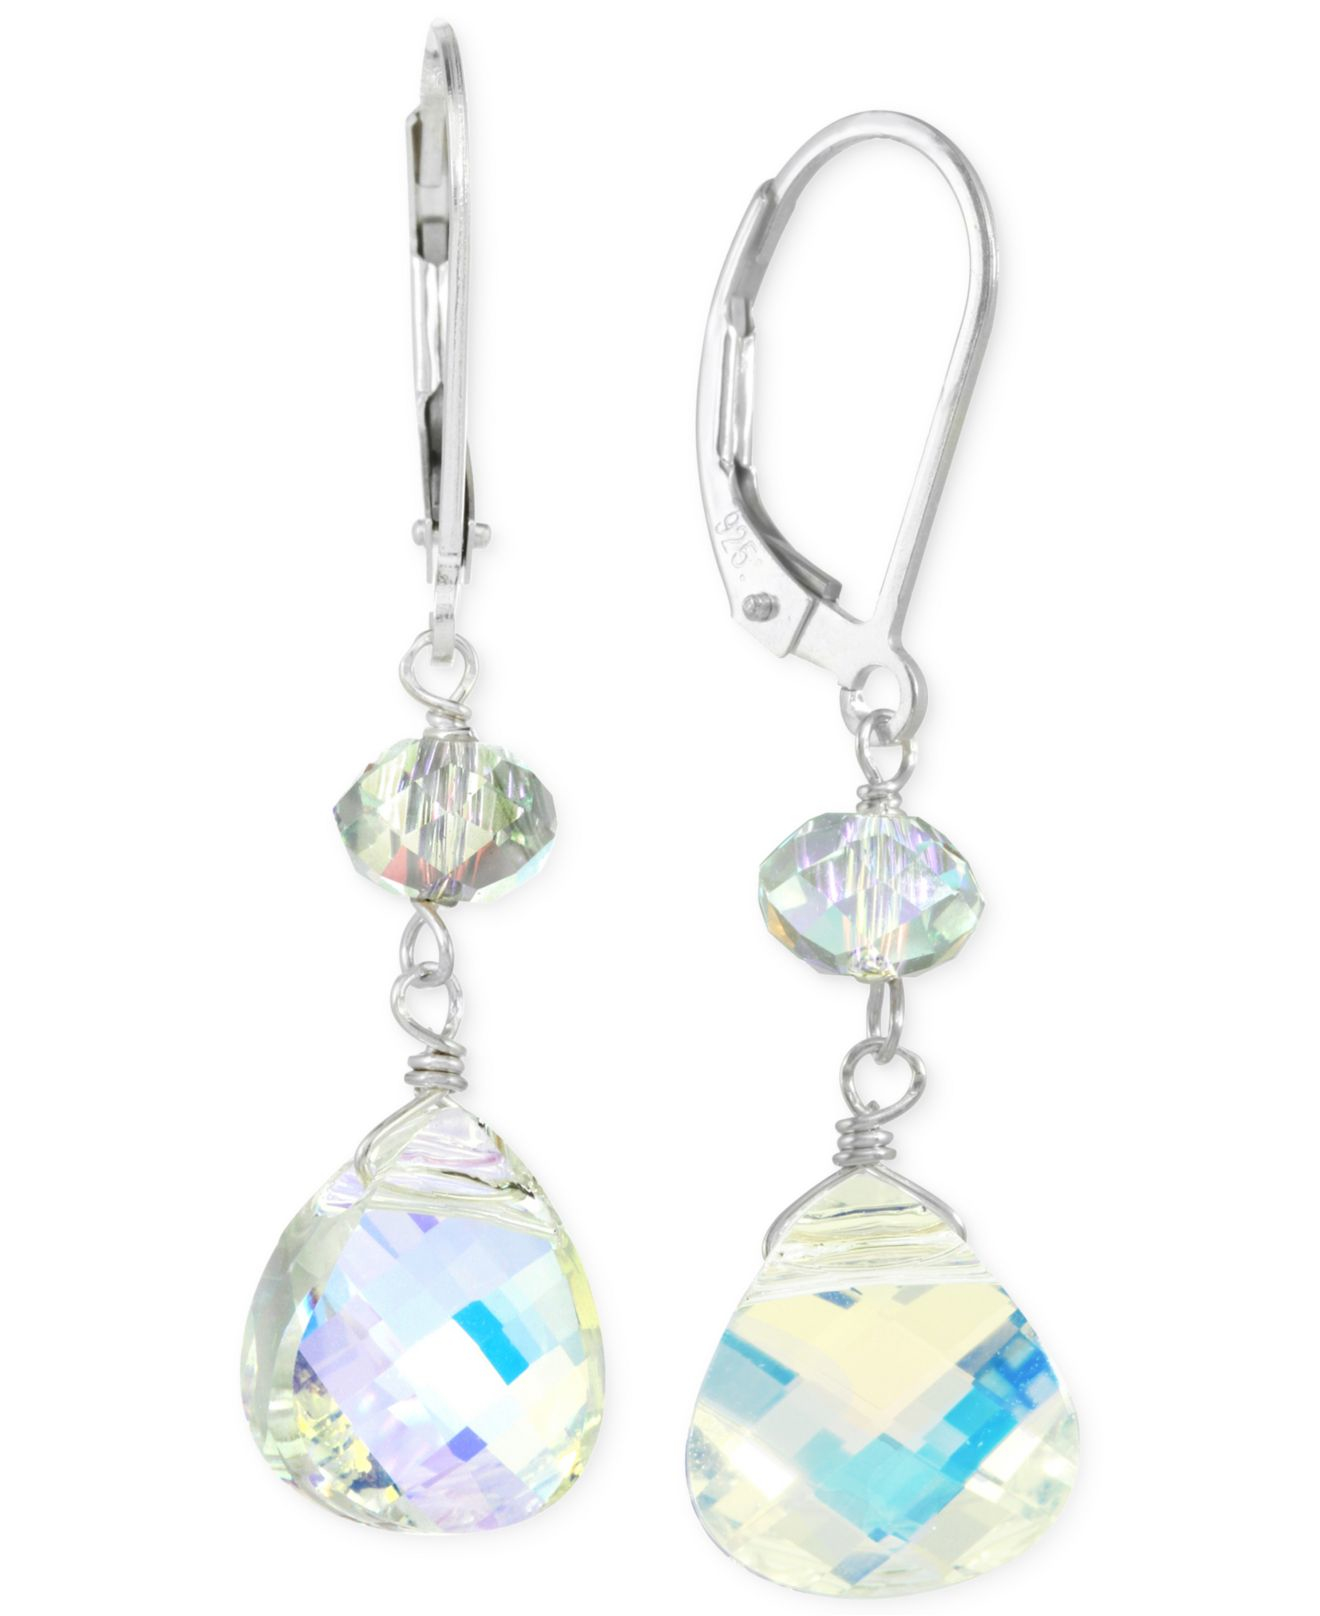 macys jewelry sale macy s swarovski leverback earrings in sterling 2305